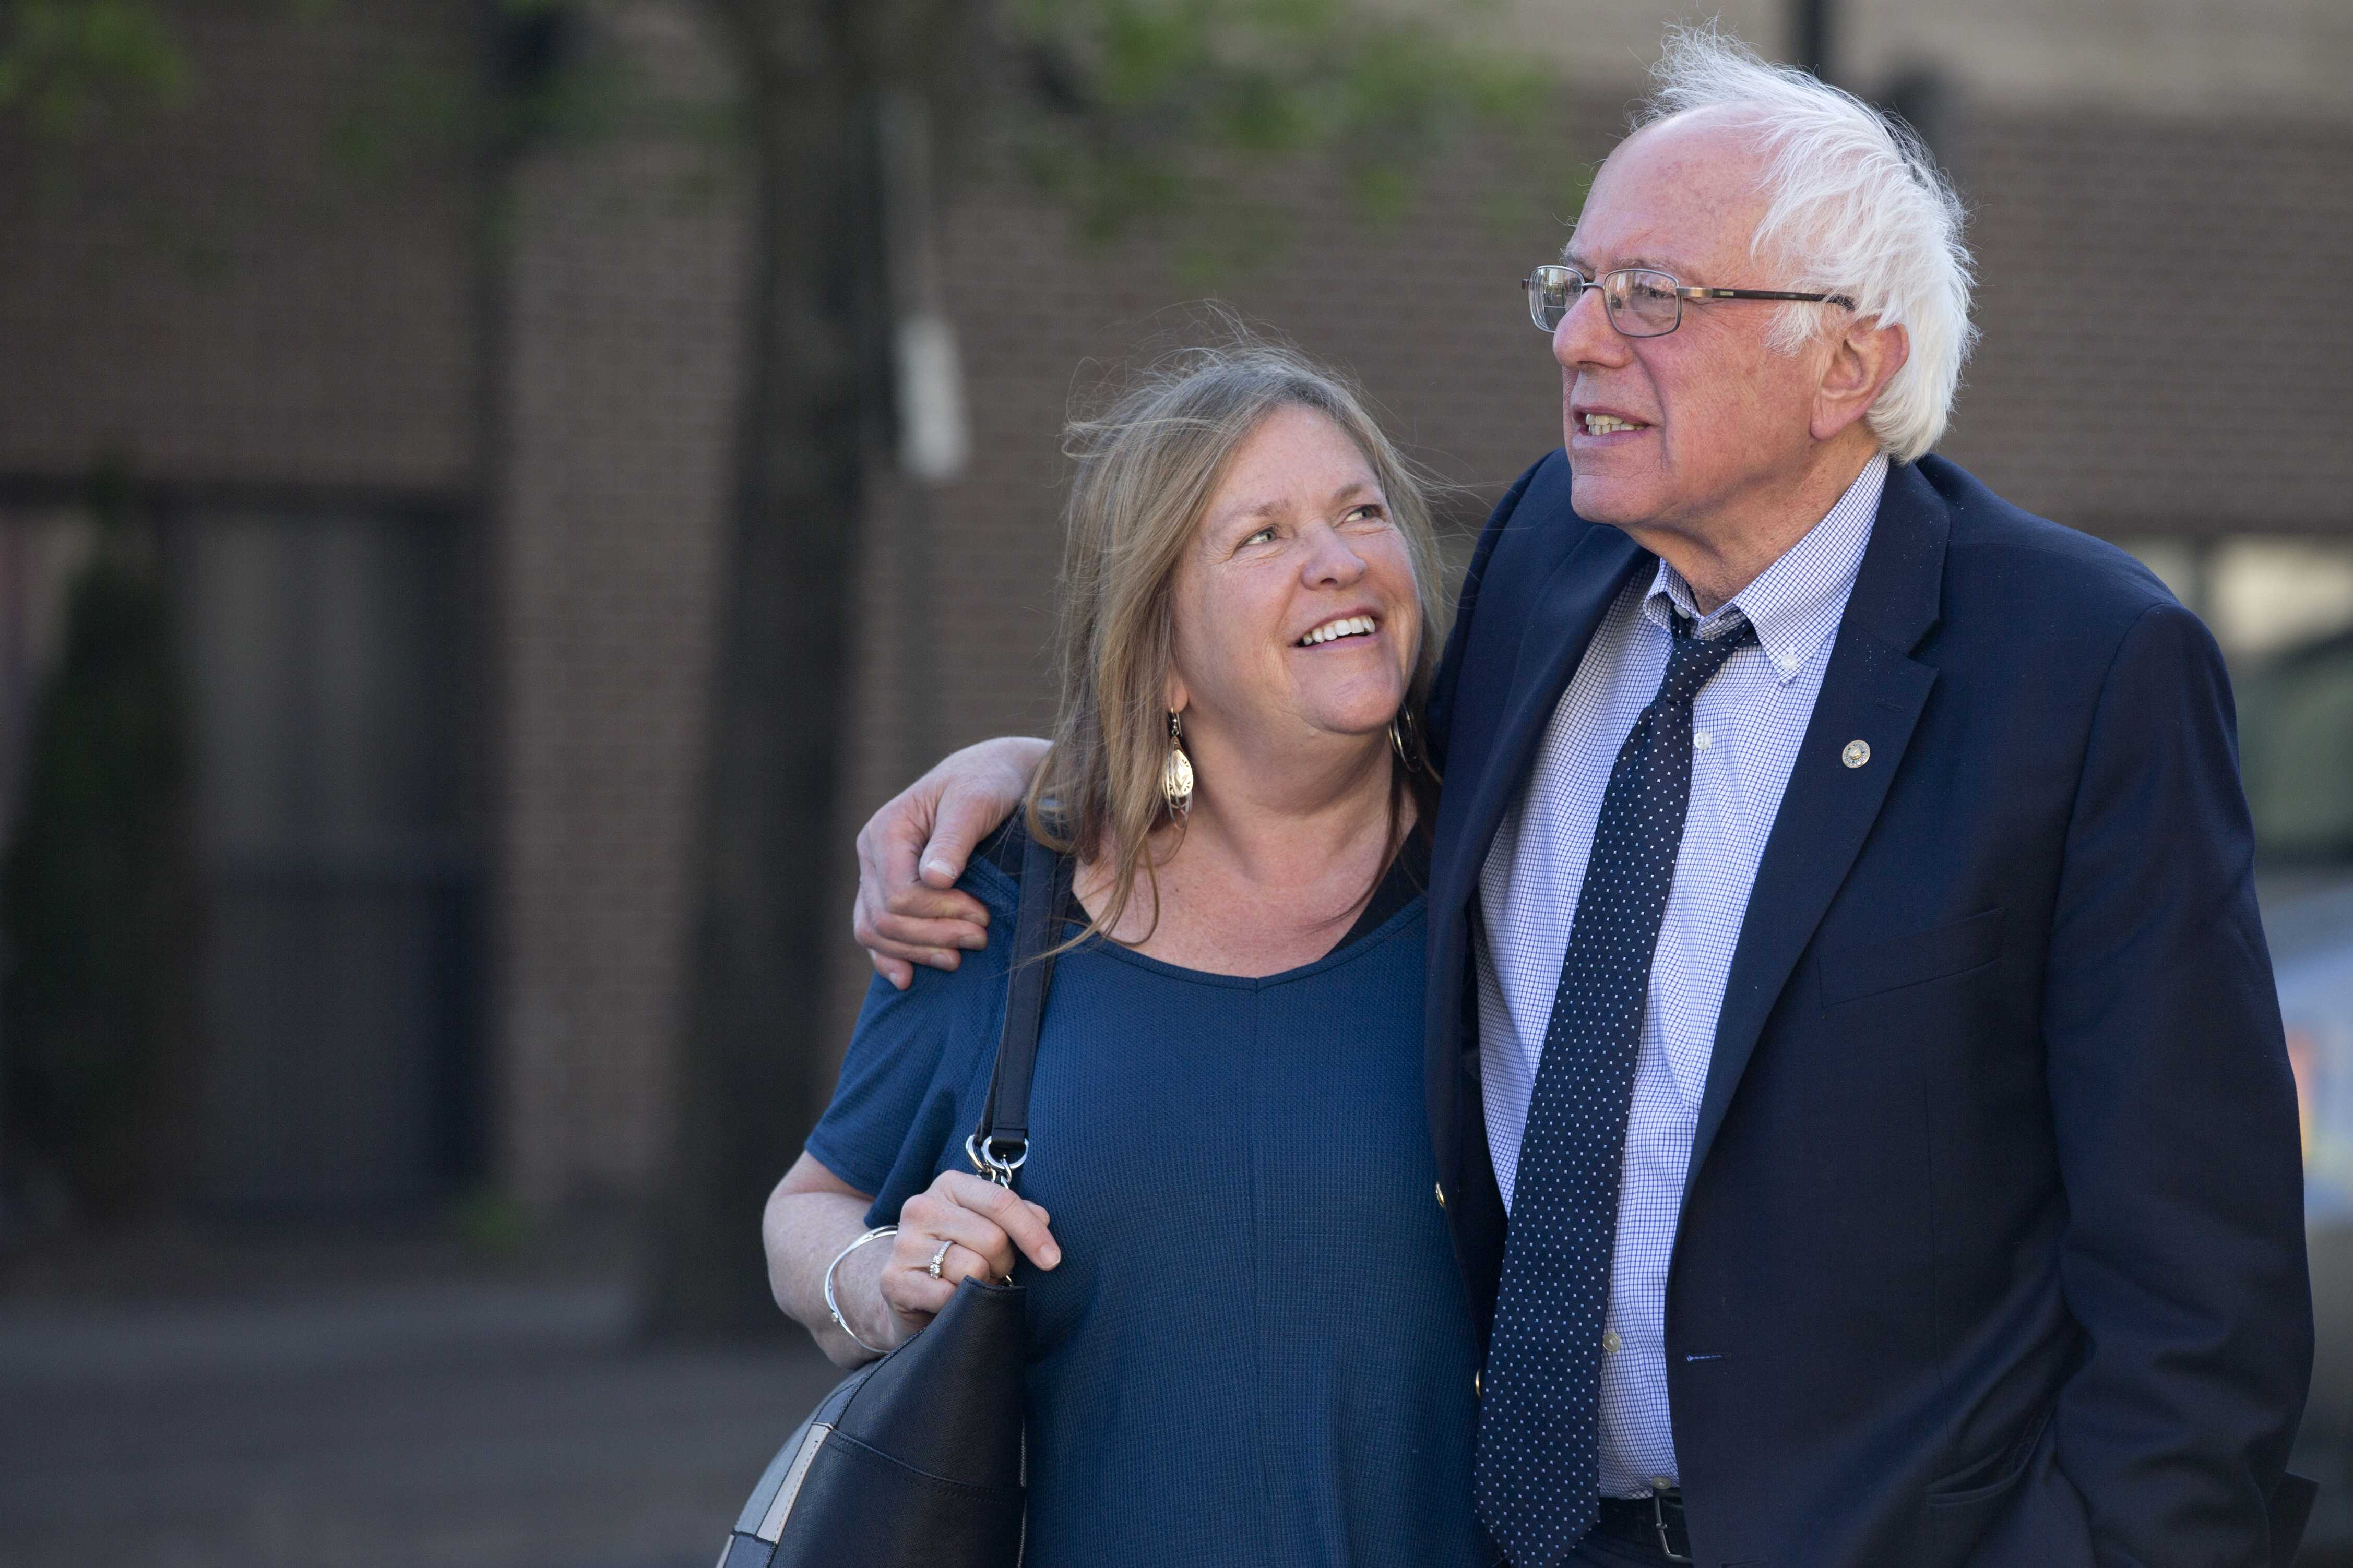 Sanders' Wife Under FBI Probe for Real Estate Deal